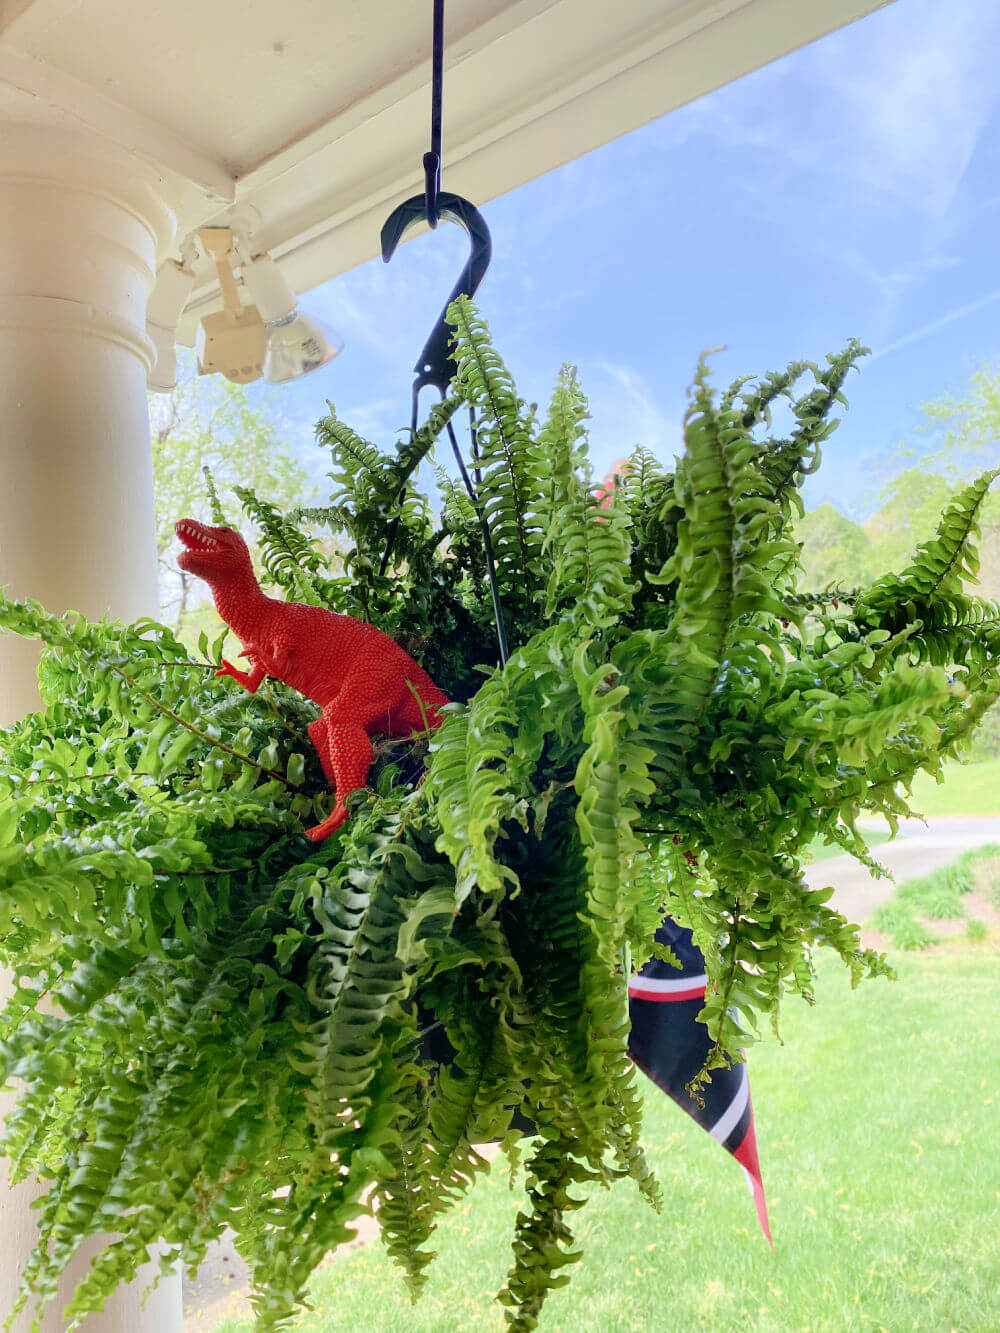 keeping birds out of ferns